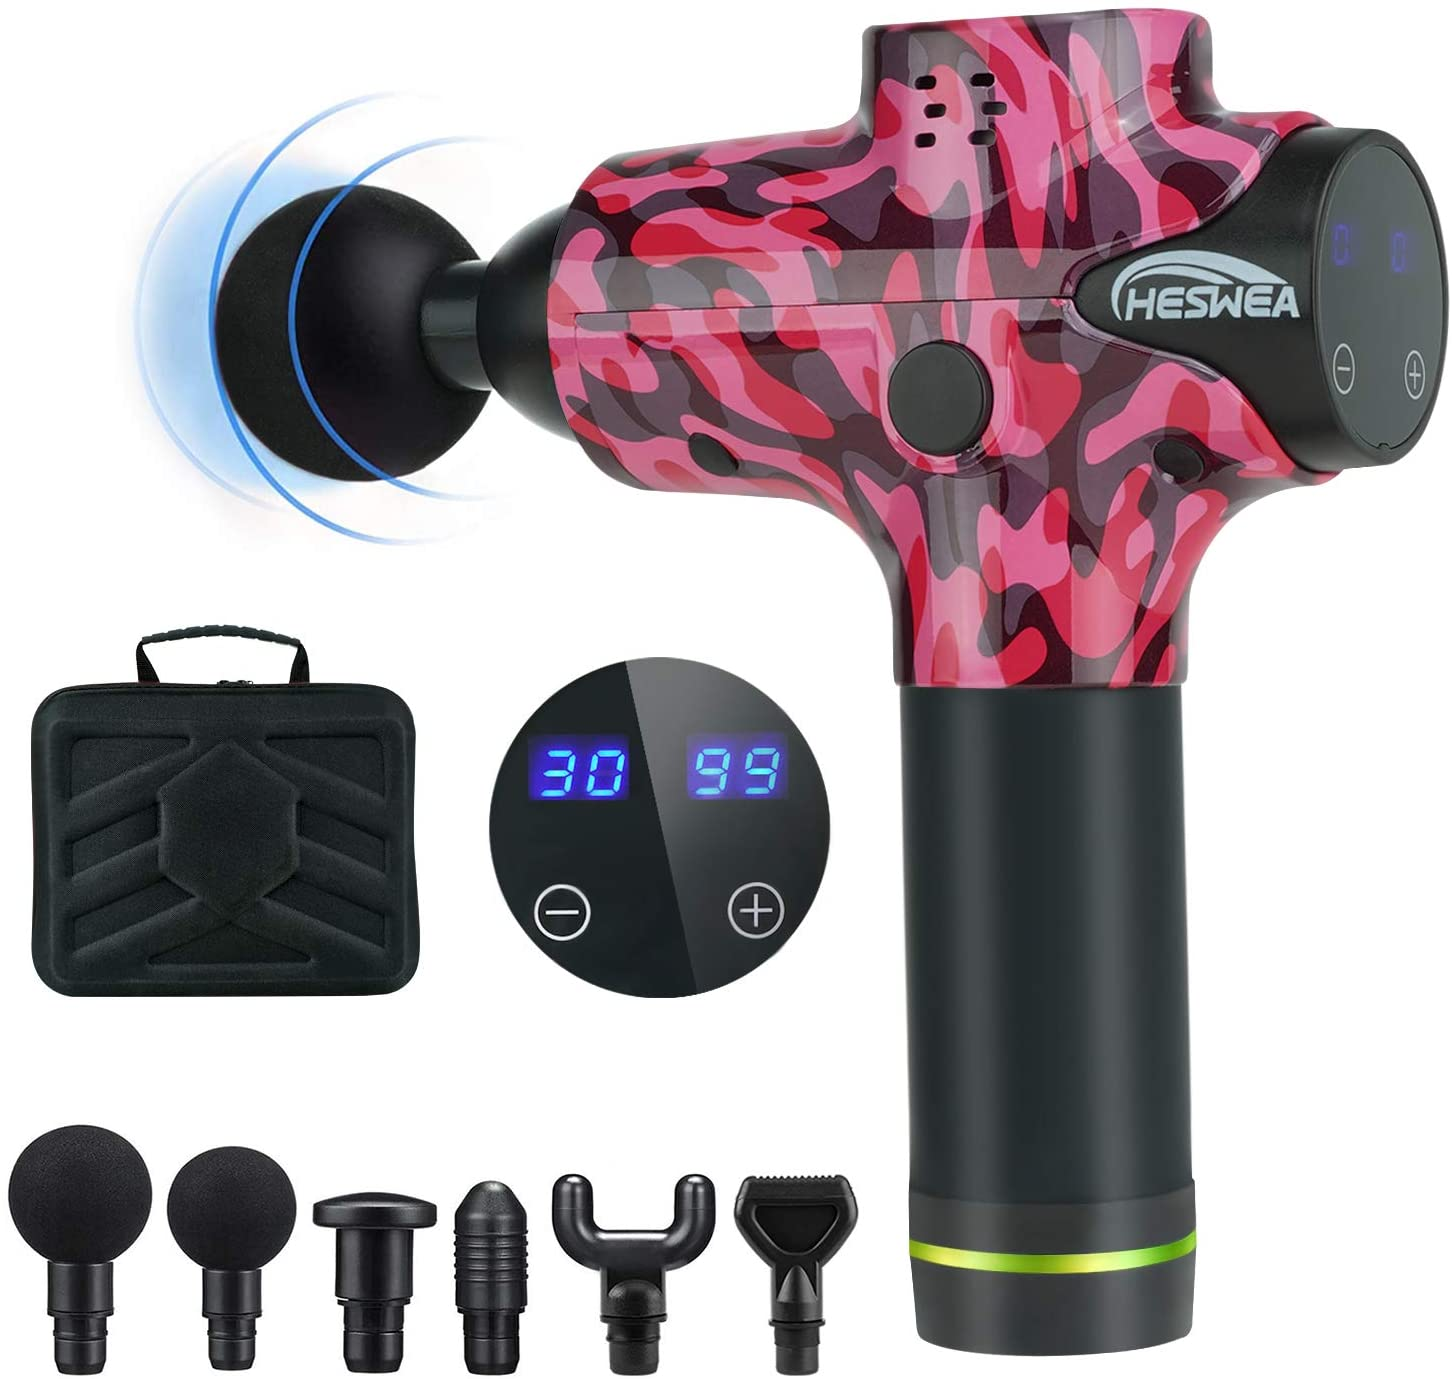 HESWEA Muscle Massage Gun,Portable Percussion Muscle Massage for Athletes,Handheld Electric Body Massager Deep Tissue Sports Drill with 30 Adjustable Speed and 6 Heads Helps Relieve Soreness